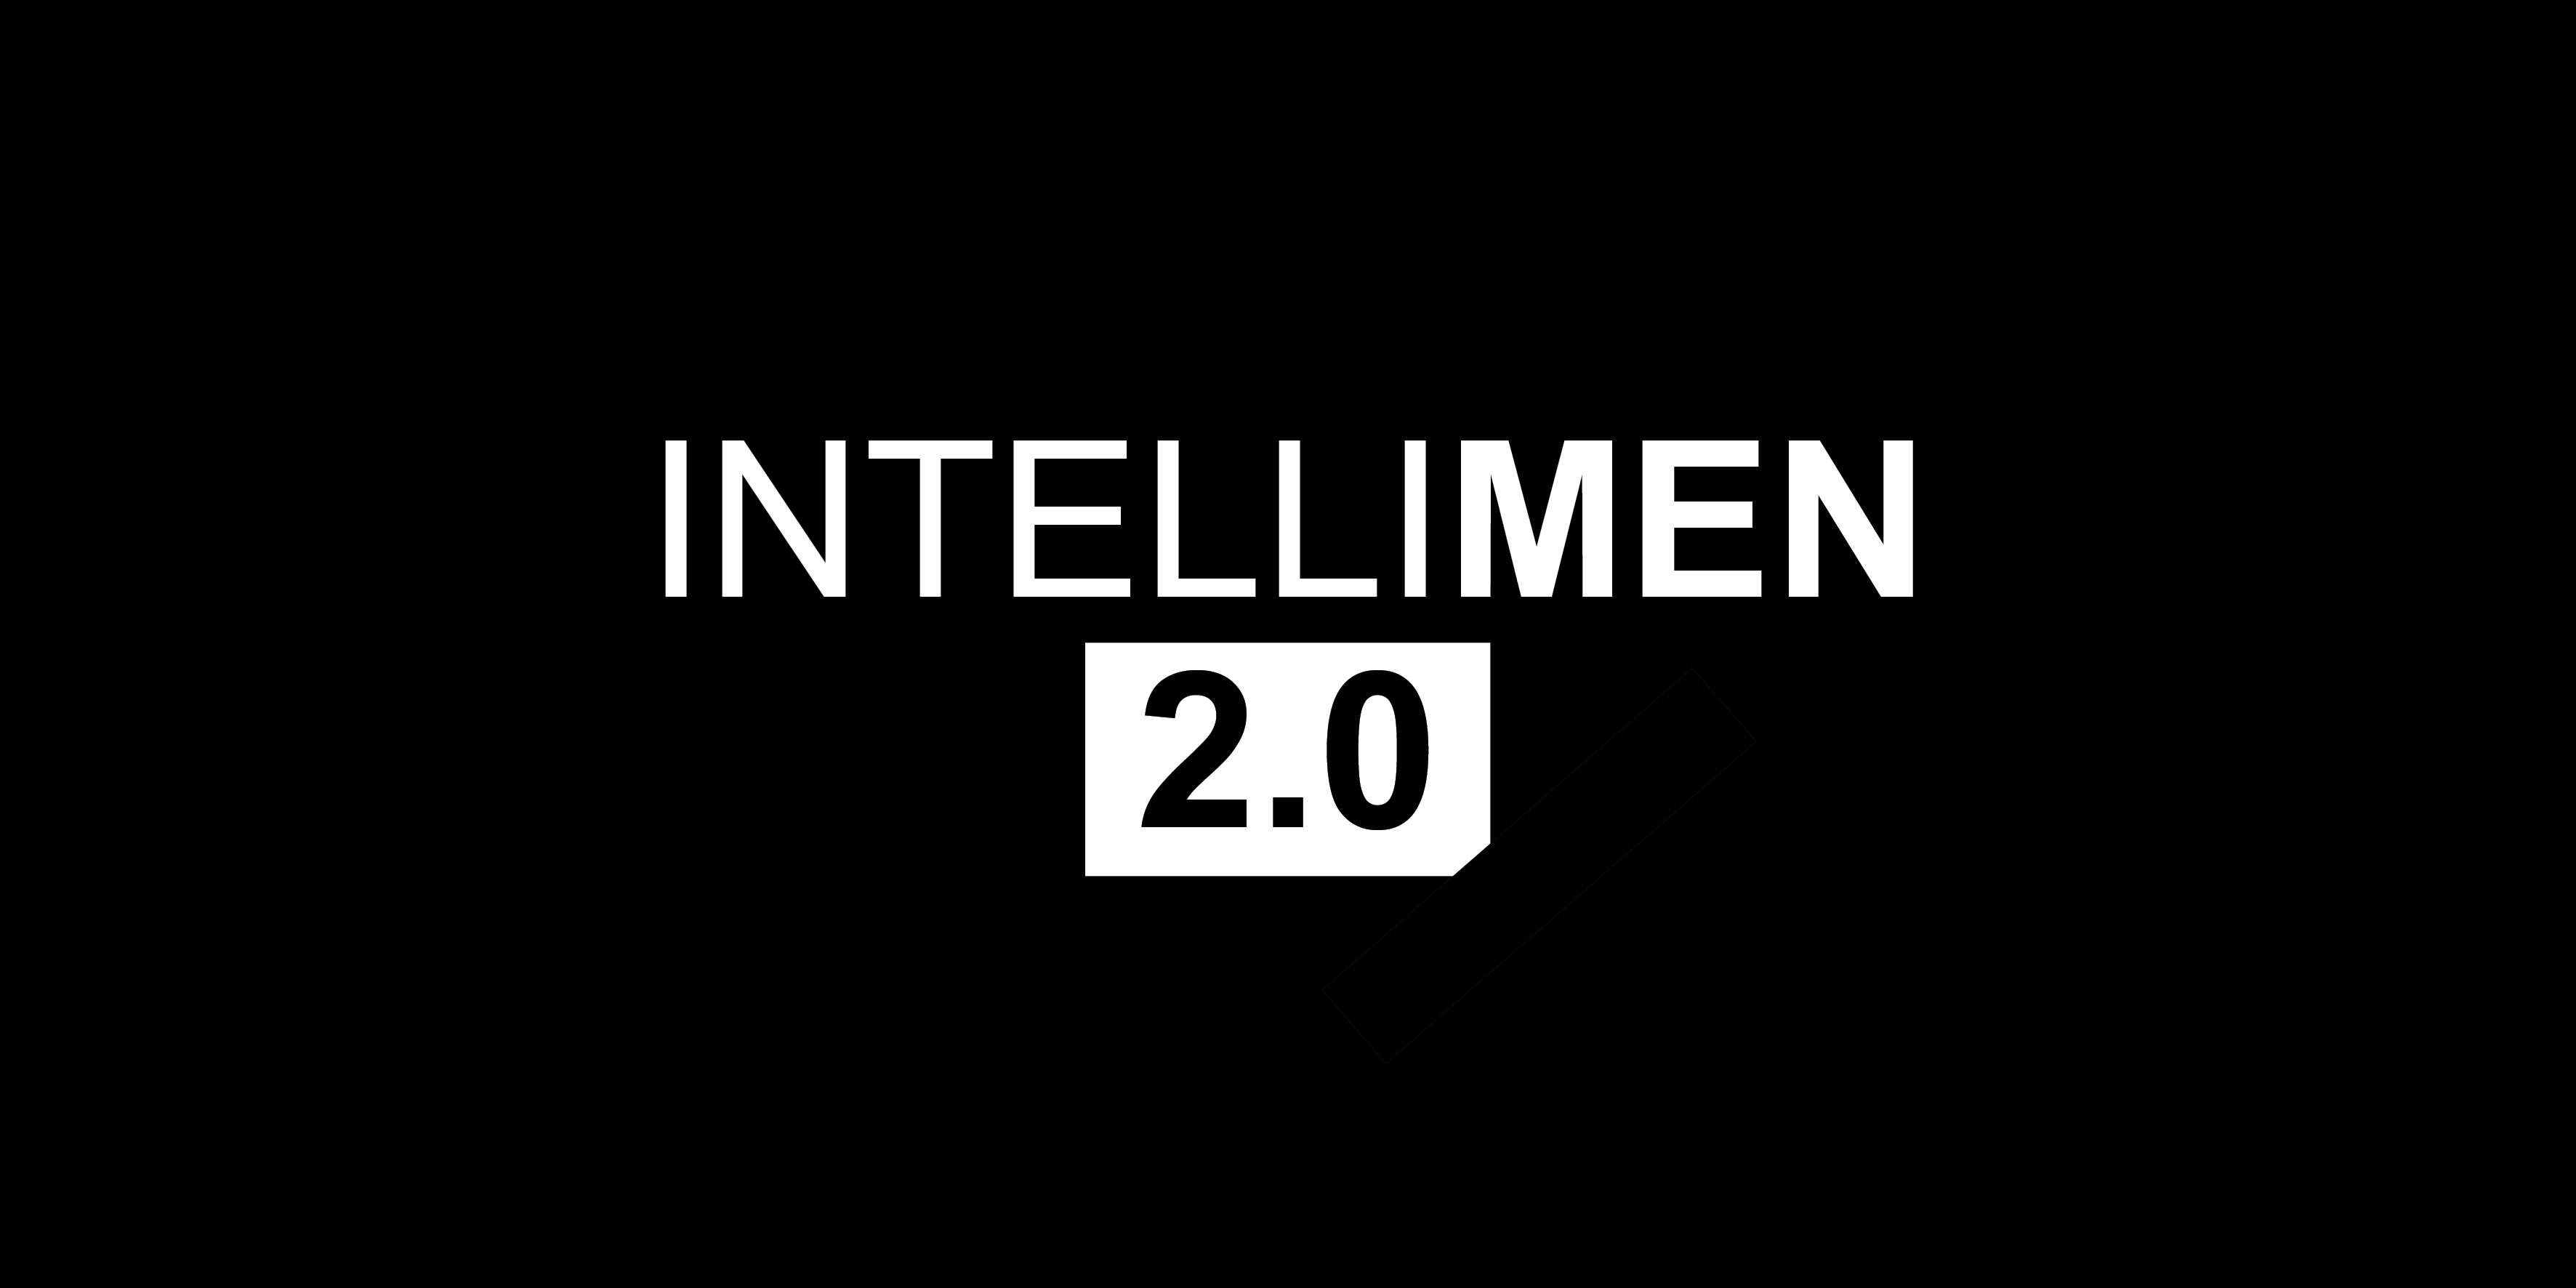 IntelliMen 2.0 – Défi #3